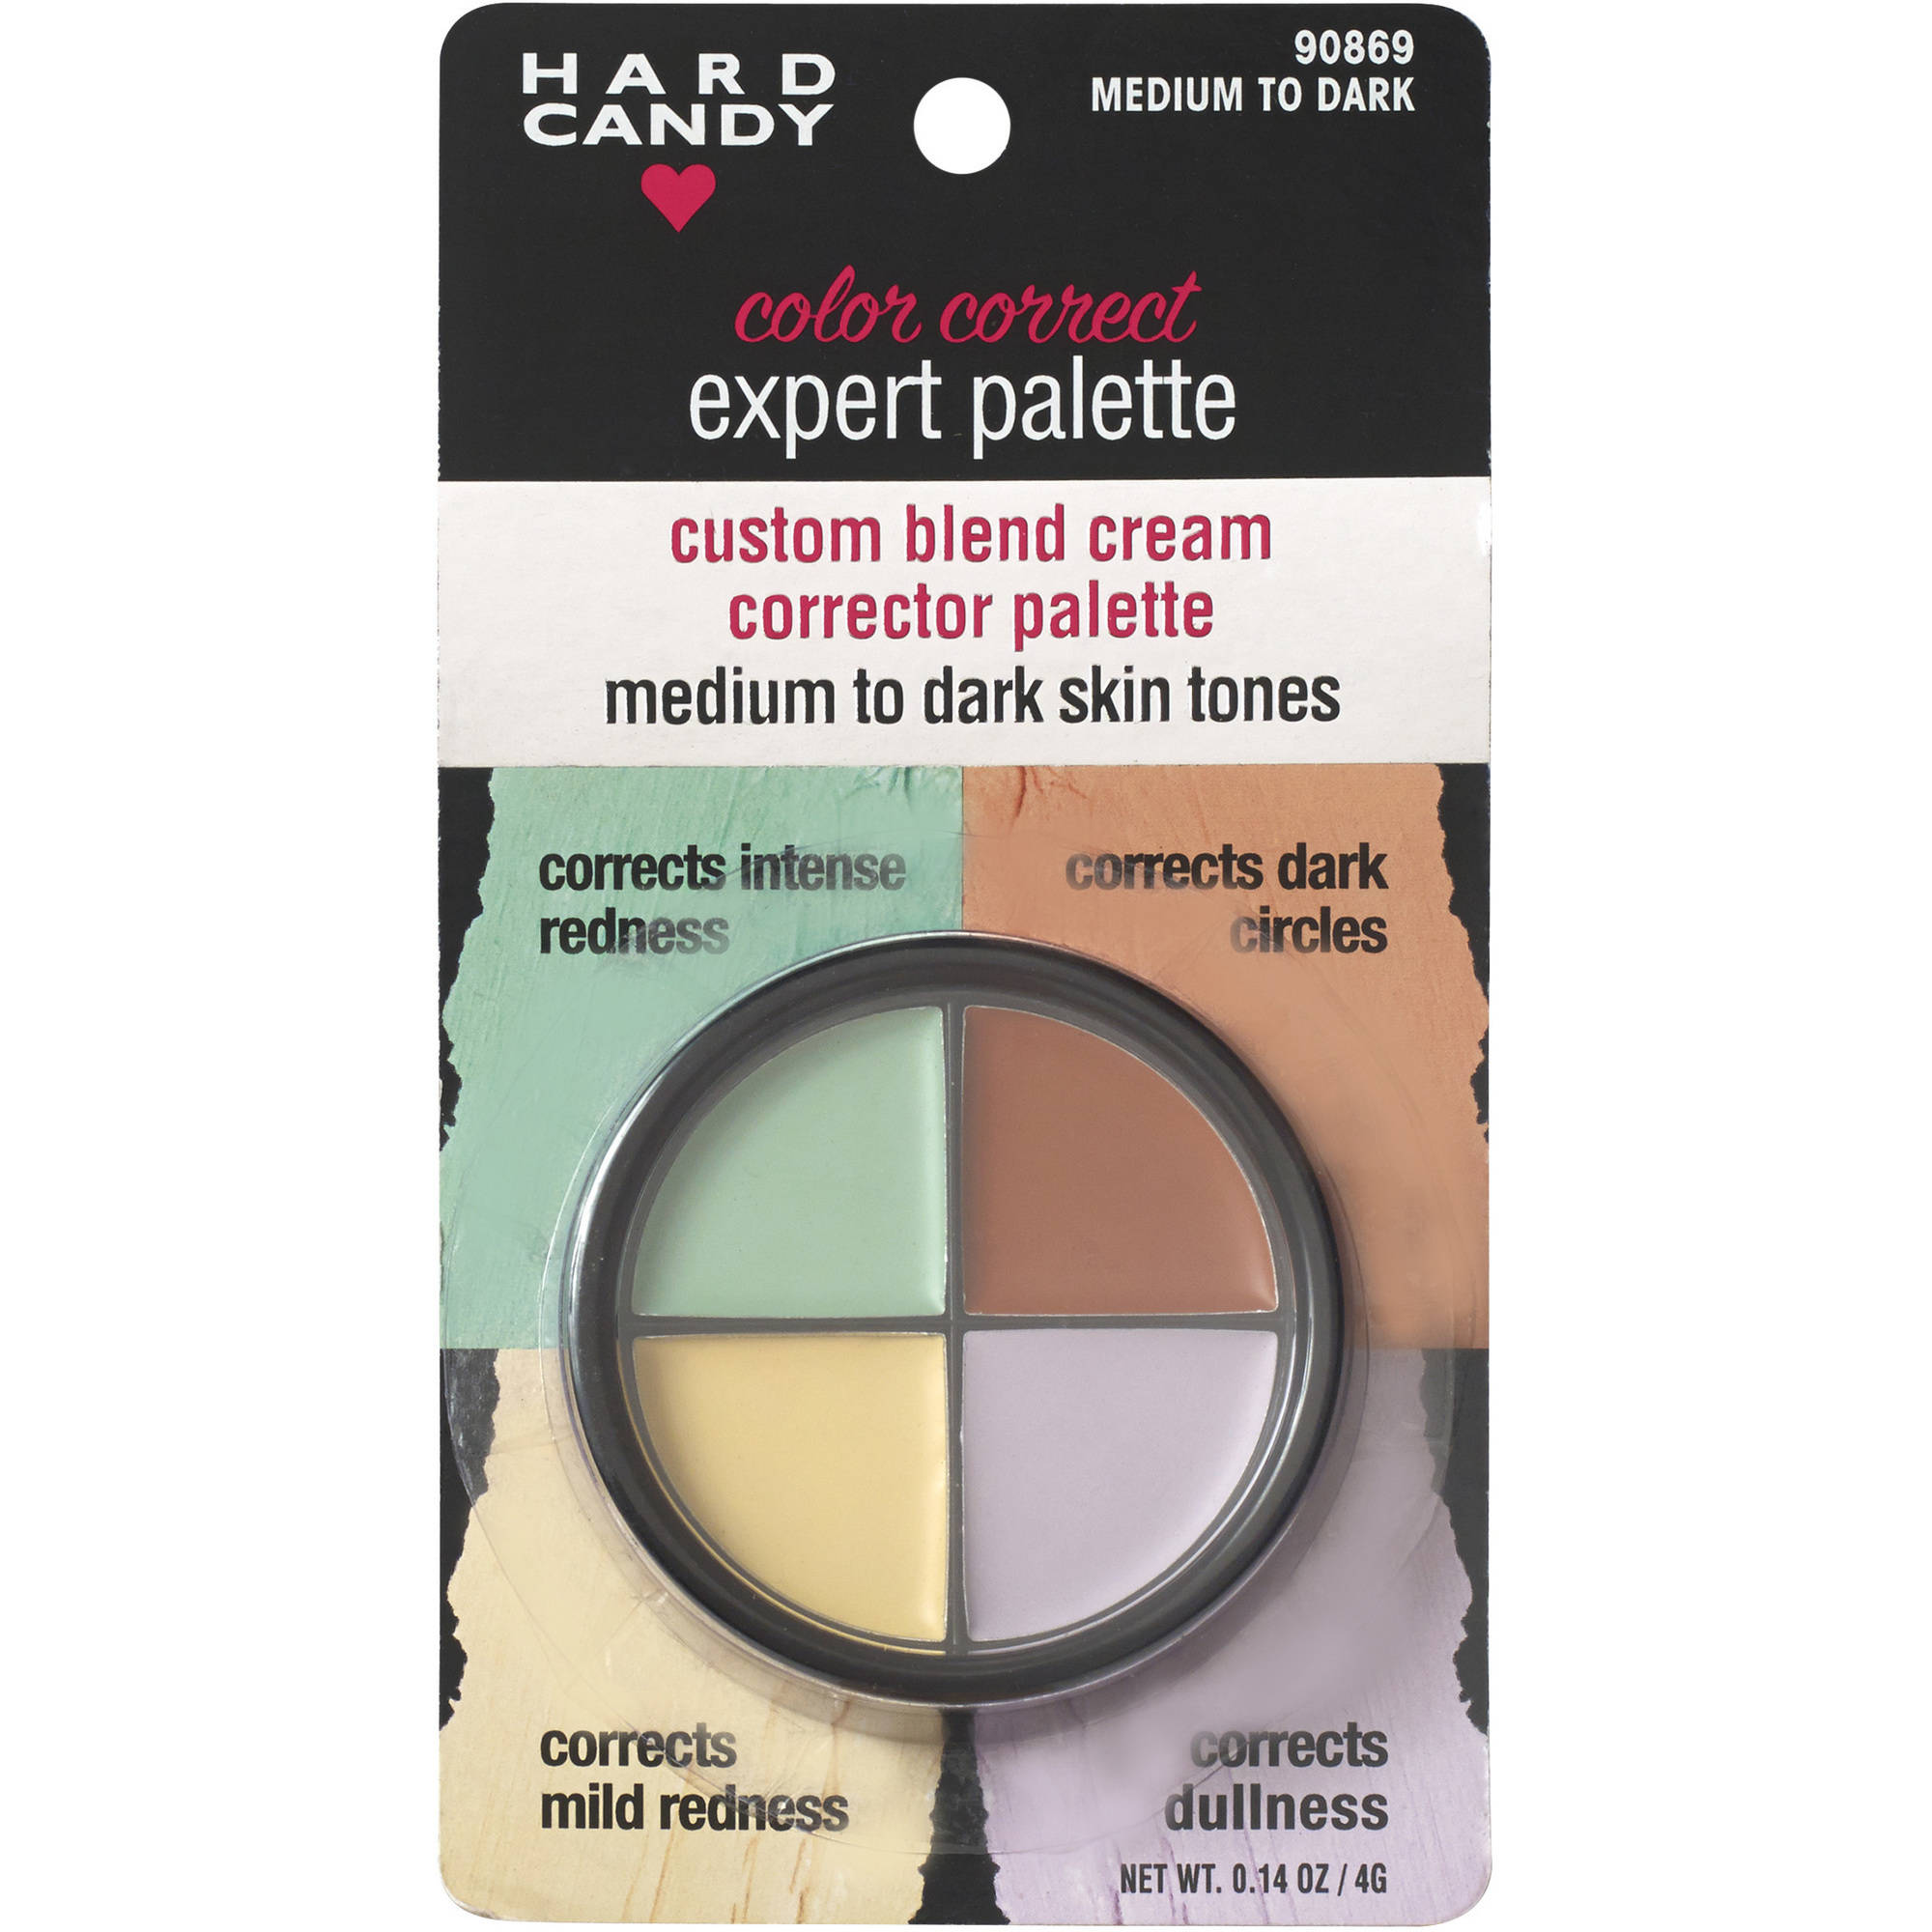 Hard Candy Color Correct Expert Palette, Medium to Dark Skin Tones, .14 oz